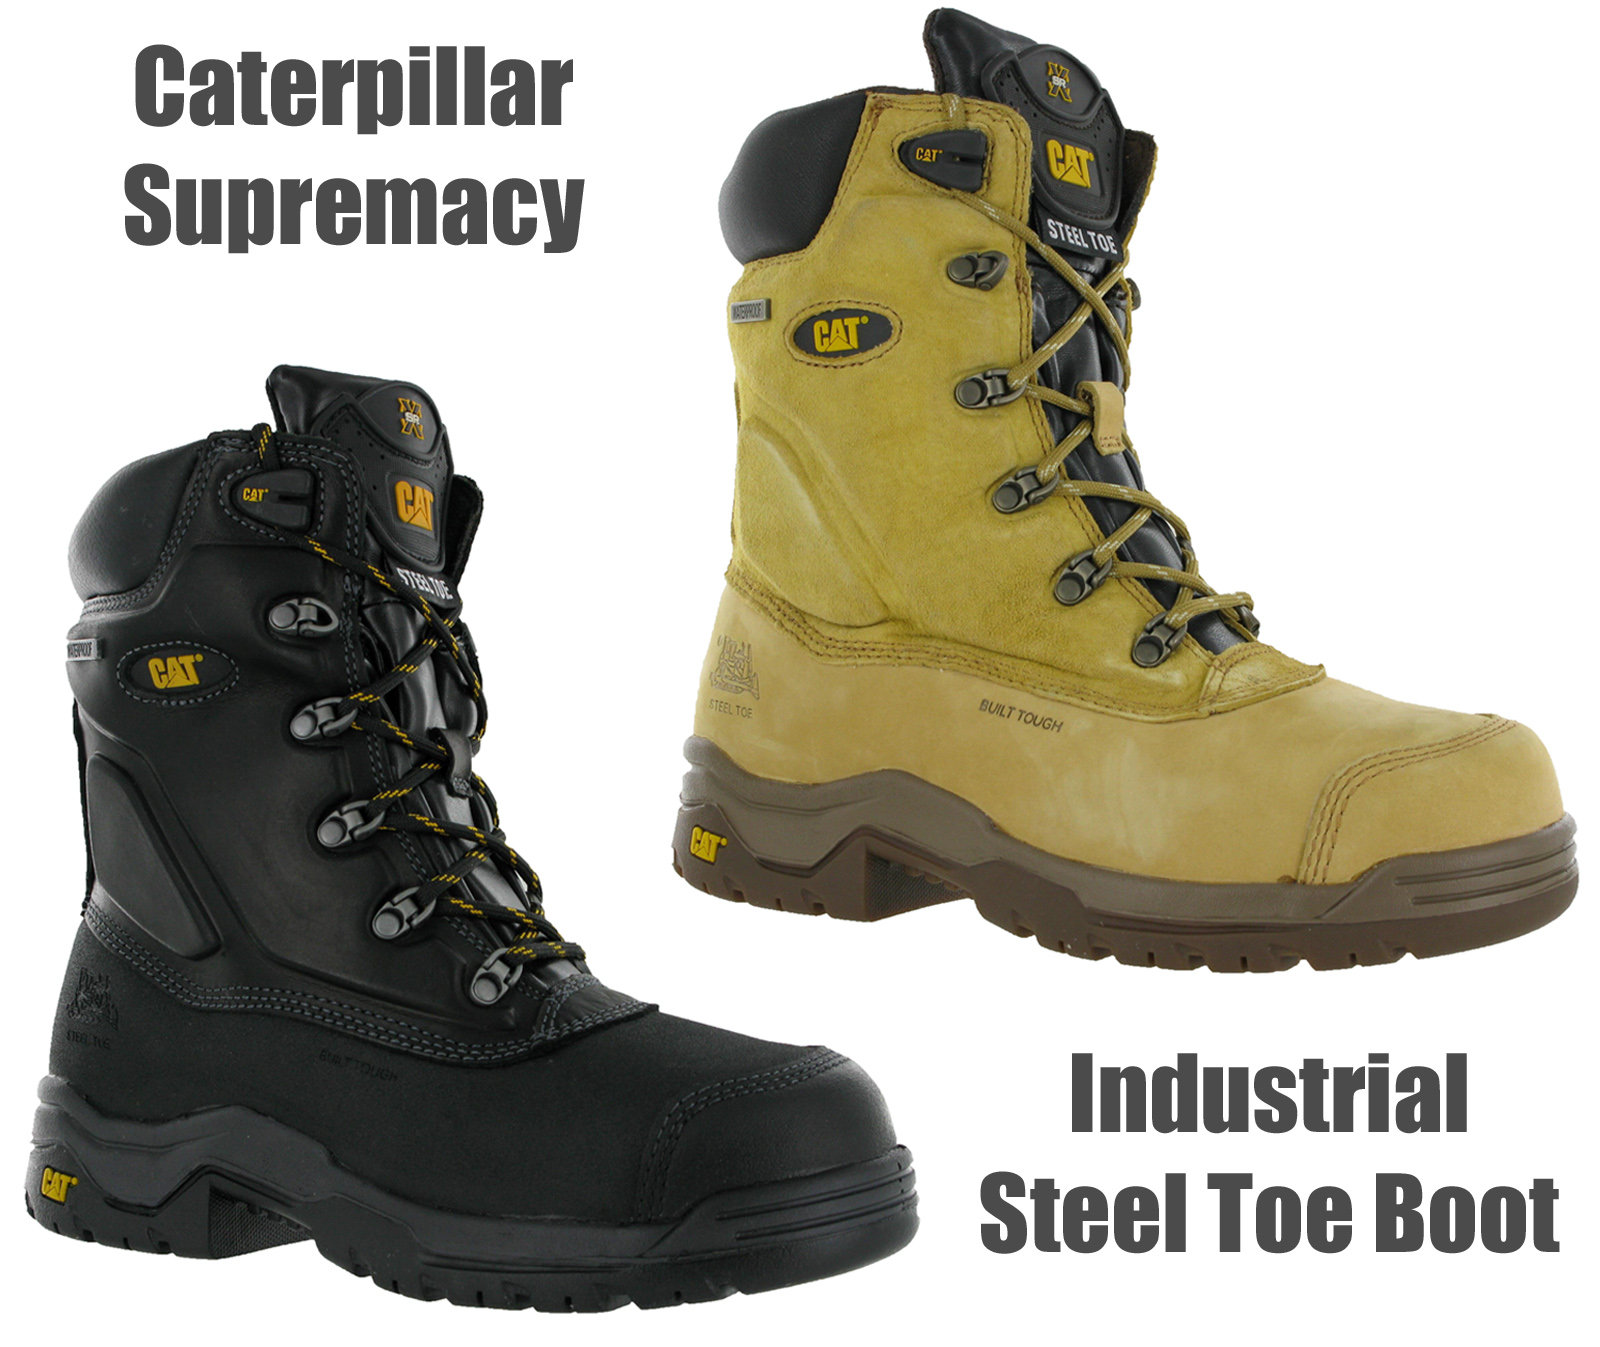 Cat Supremacy Boots Reviews